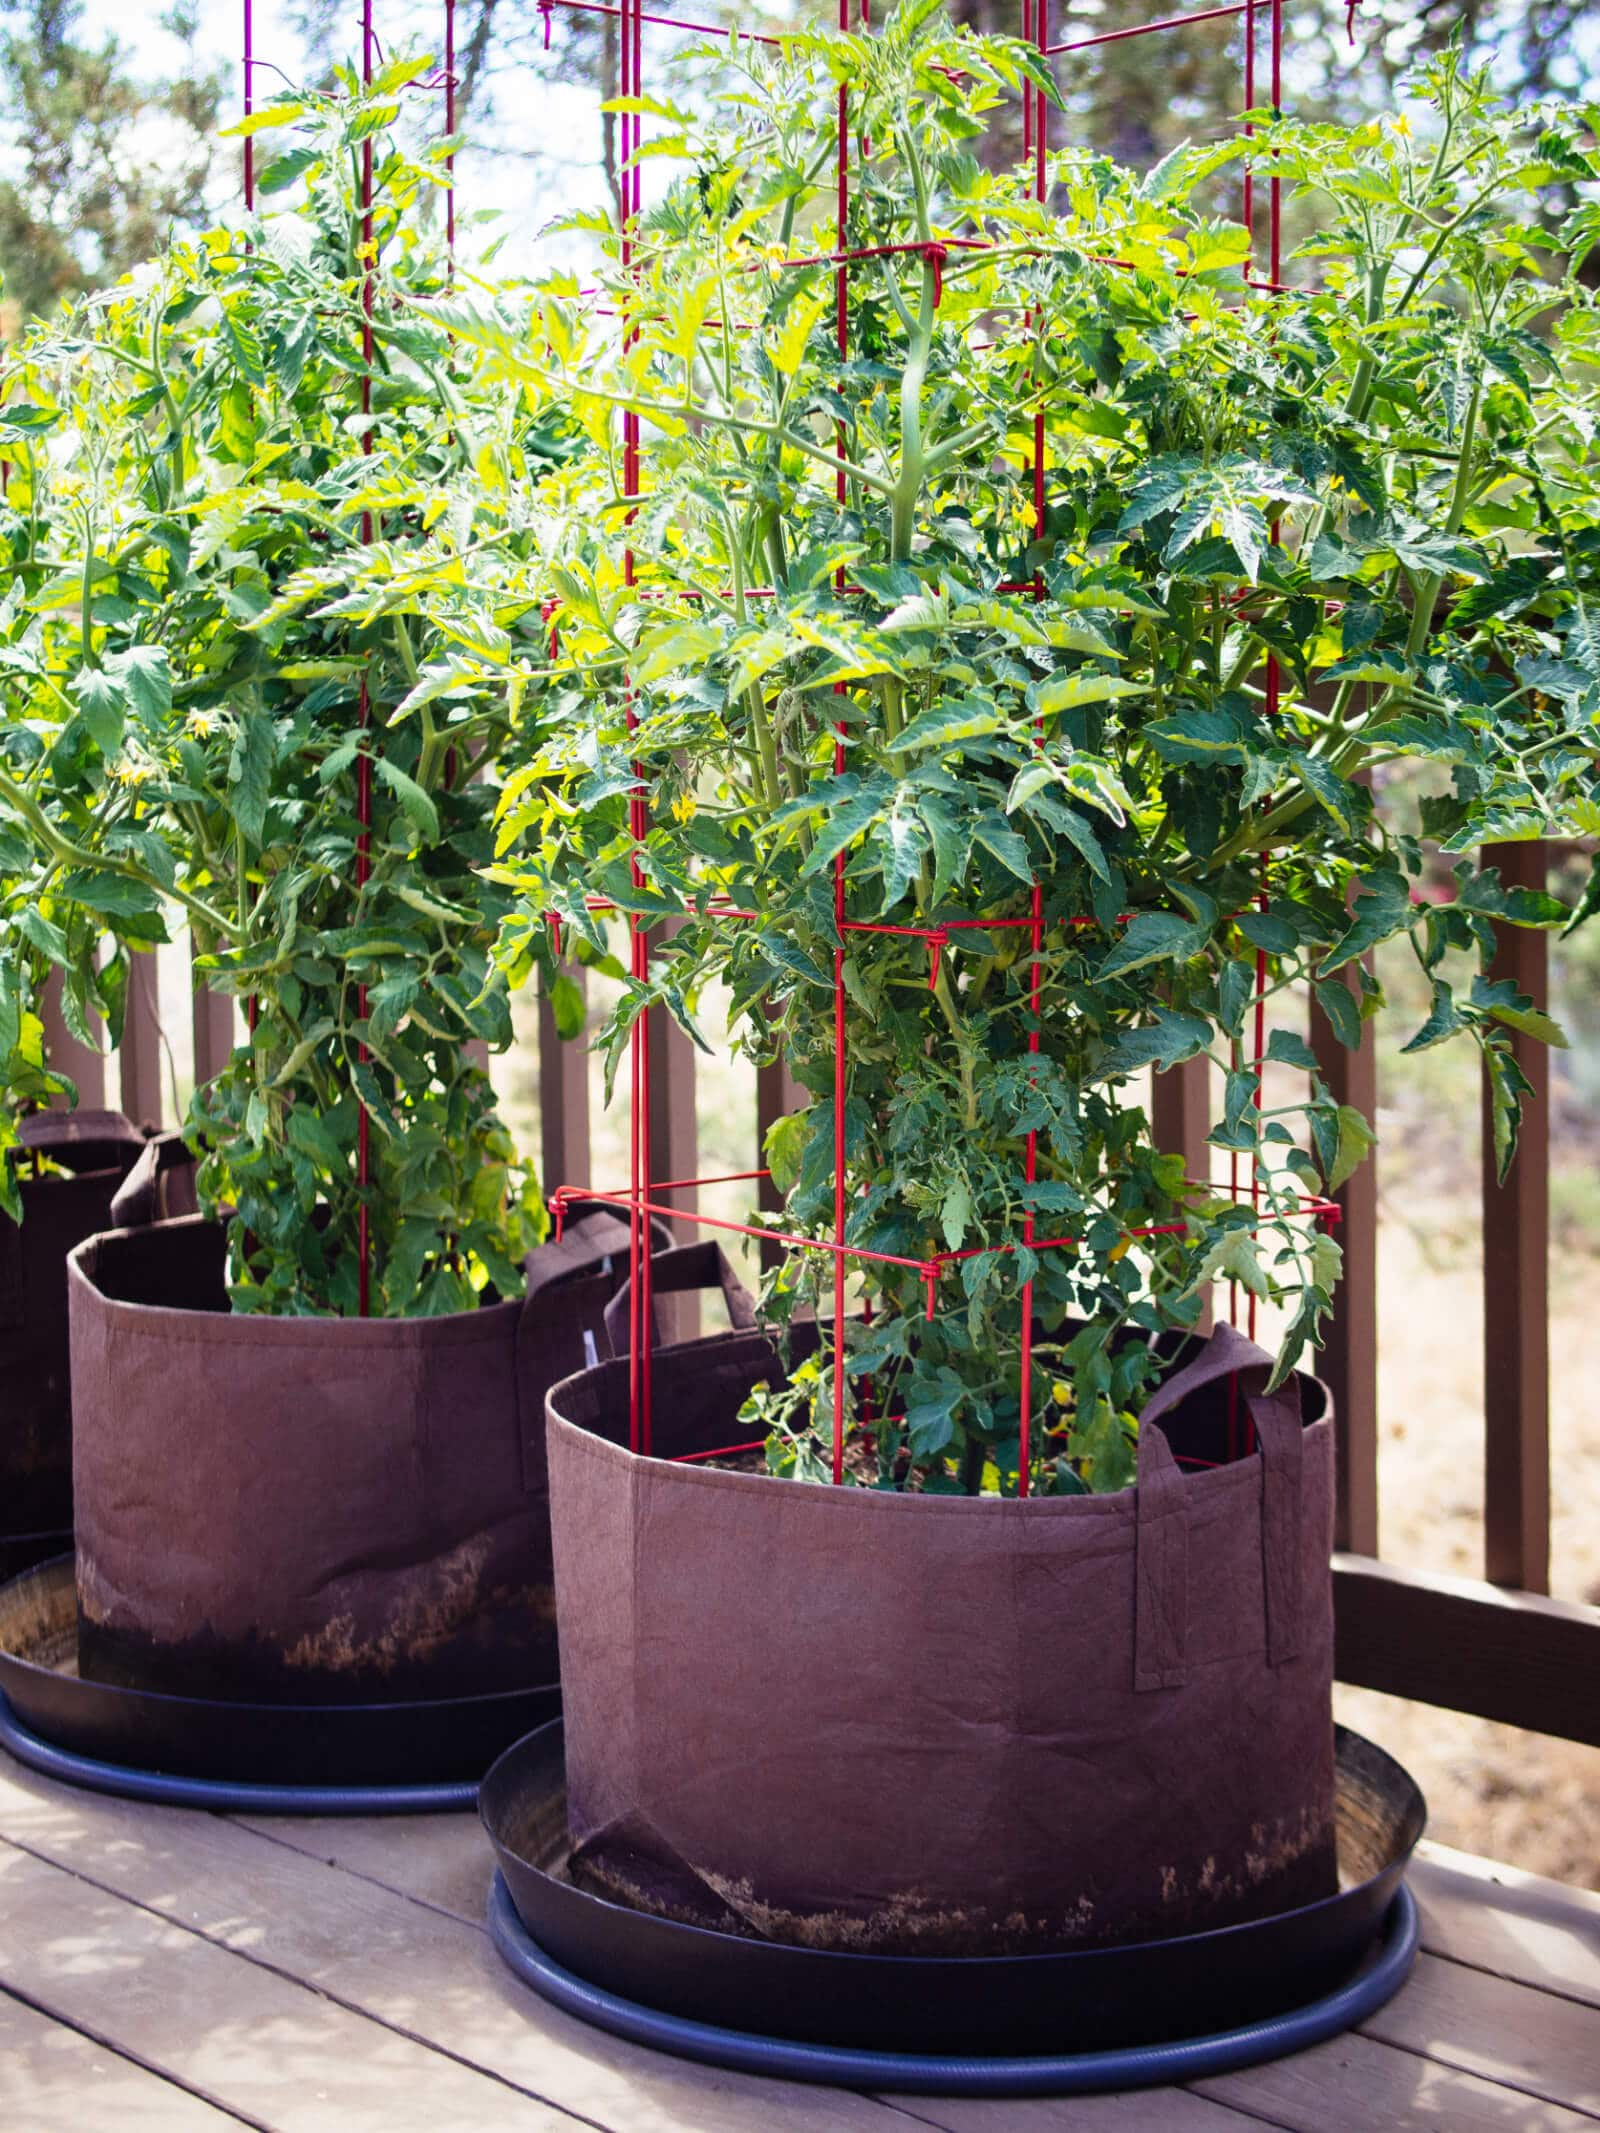 Allow ample space for growing your tomato plants